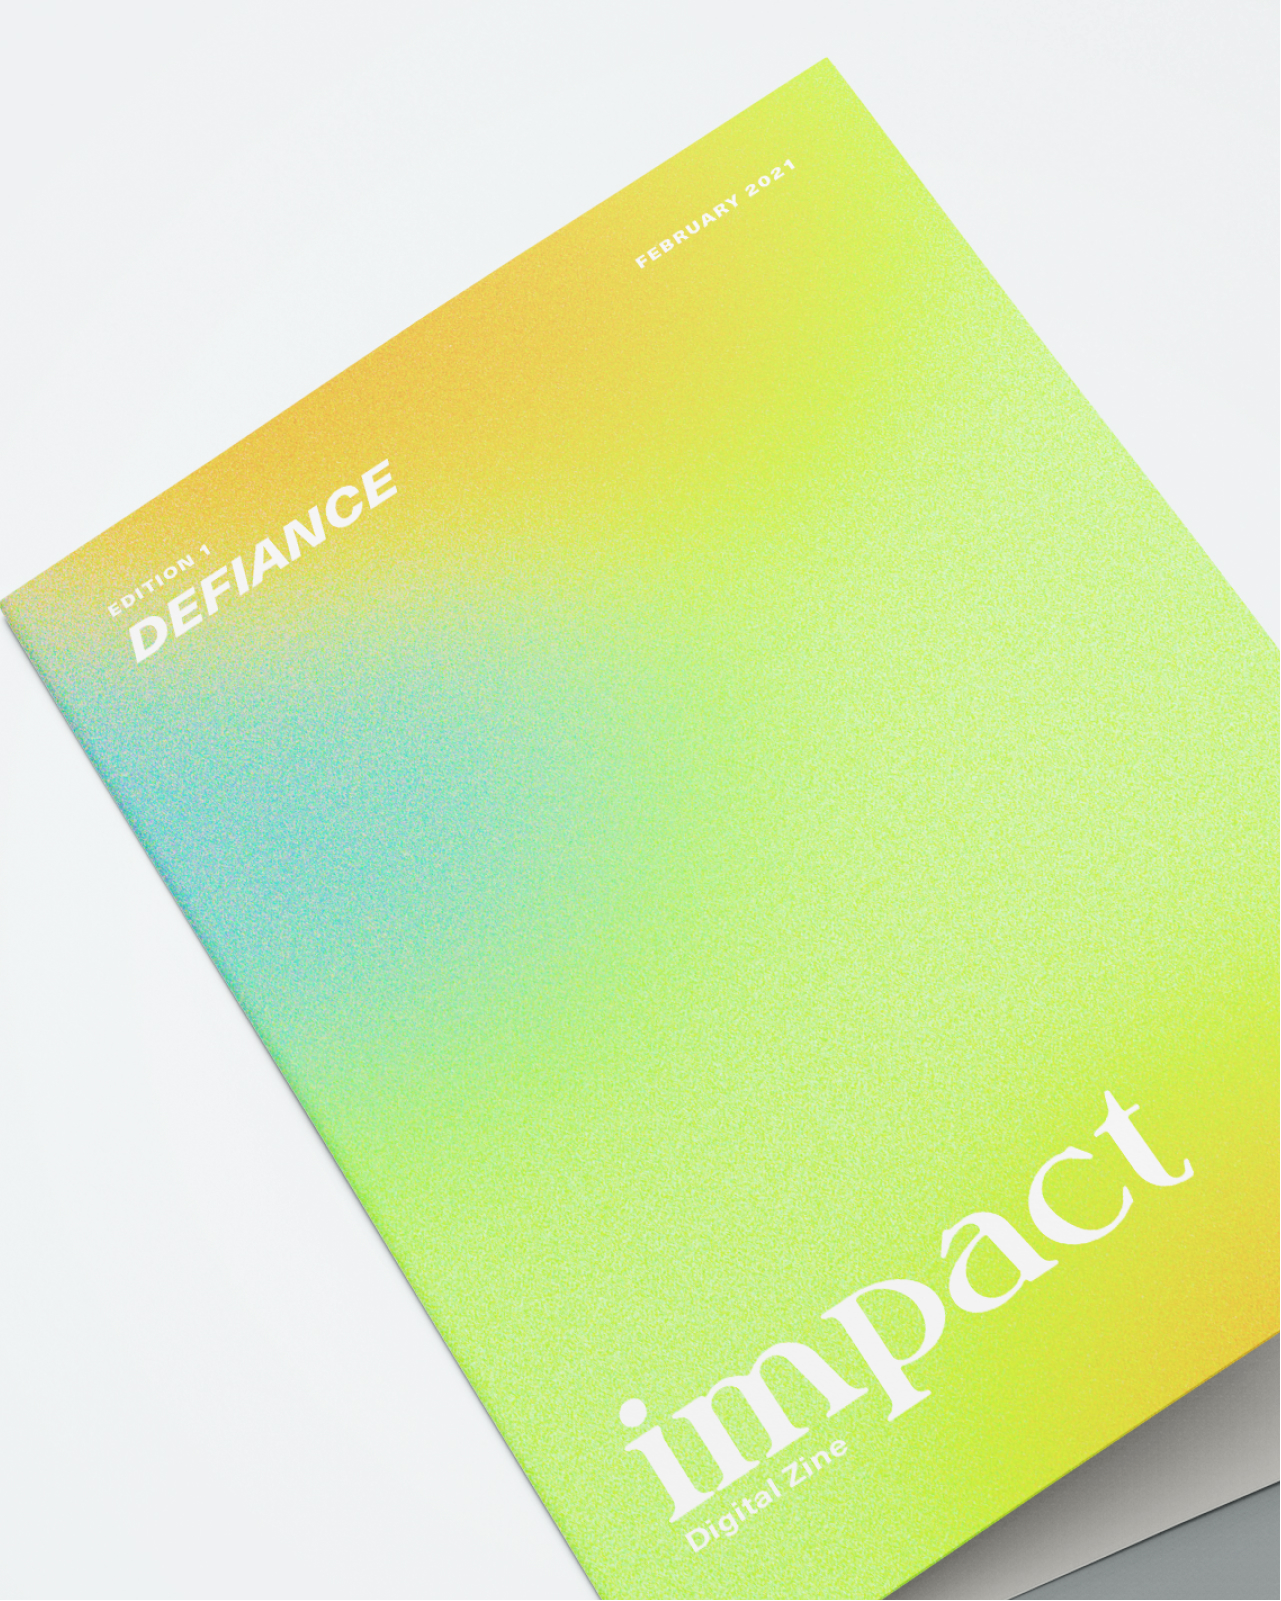 The cover of impact's first zine, featuring a bright gradient and light texture.